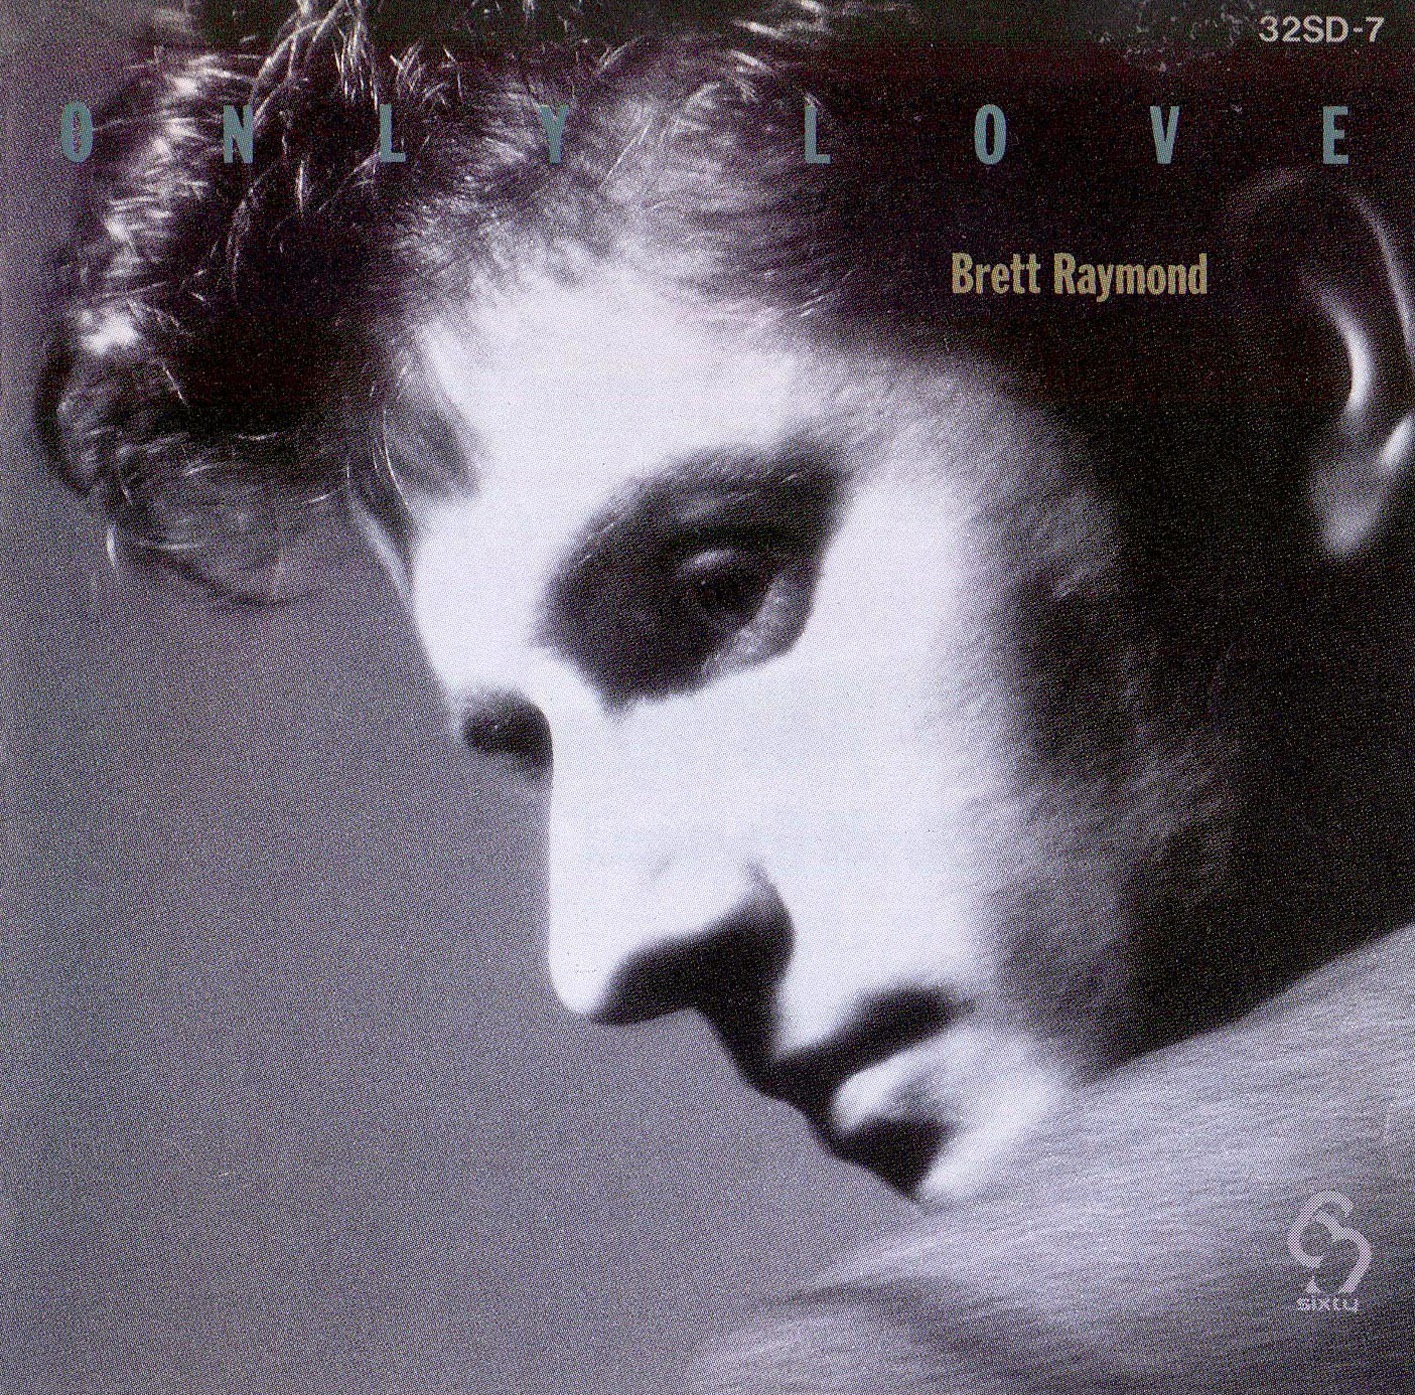 Brett Raymond Only love 1986 aor melodic rock westcoast music blogspot albums